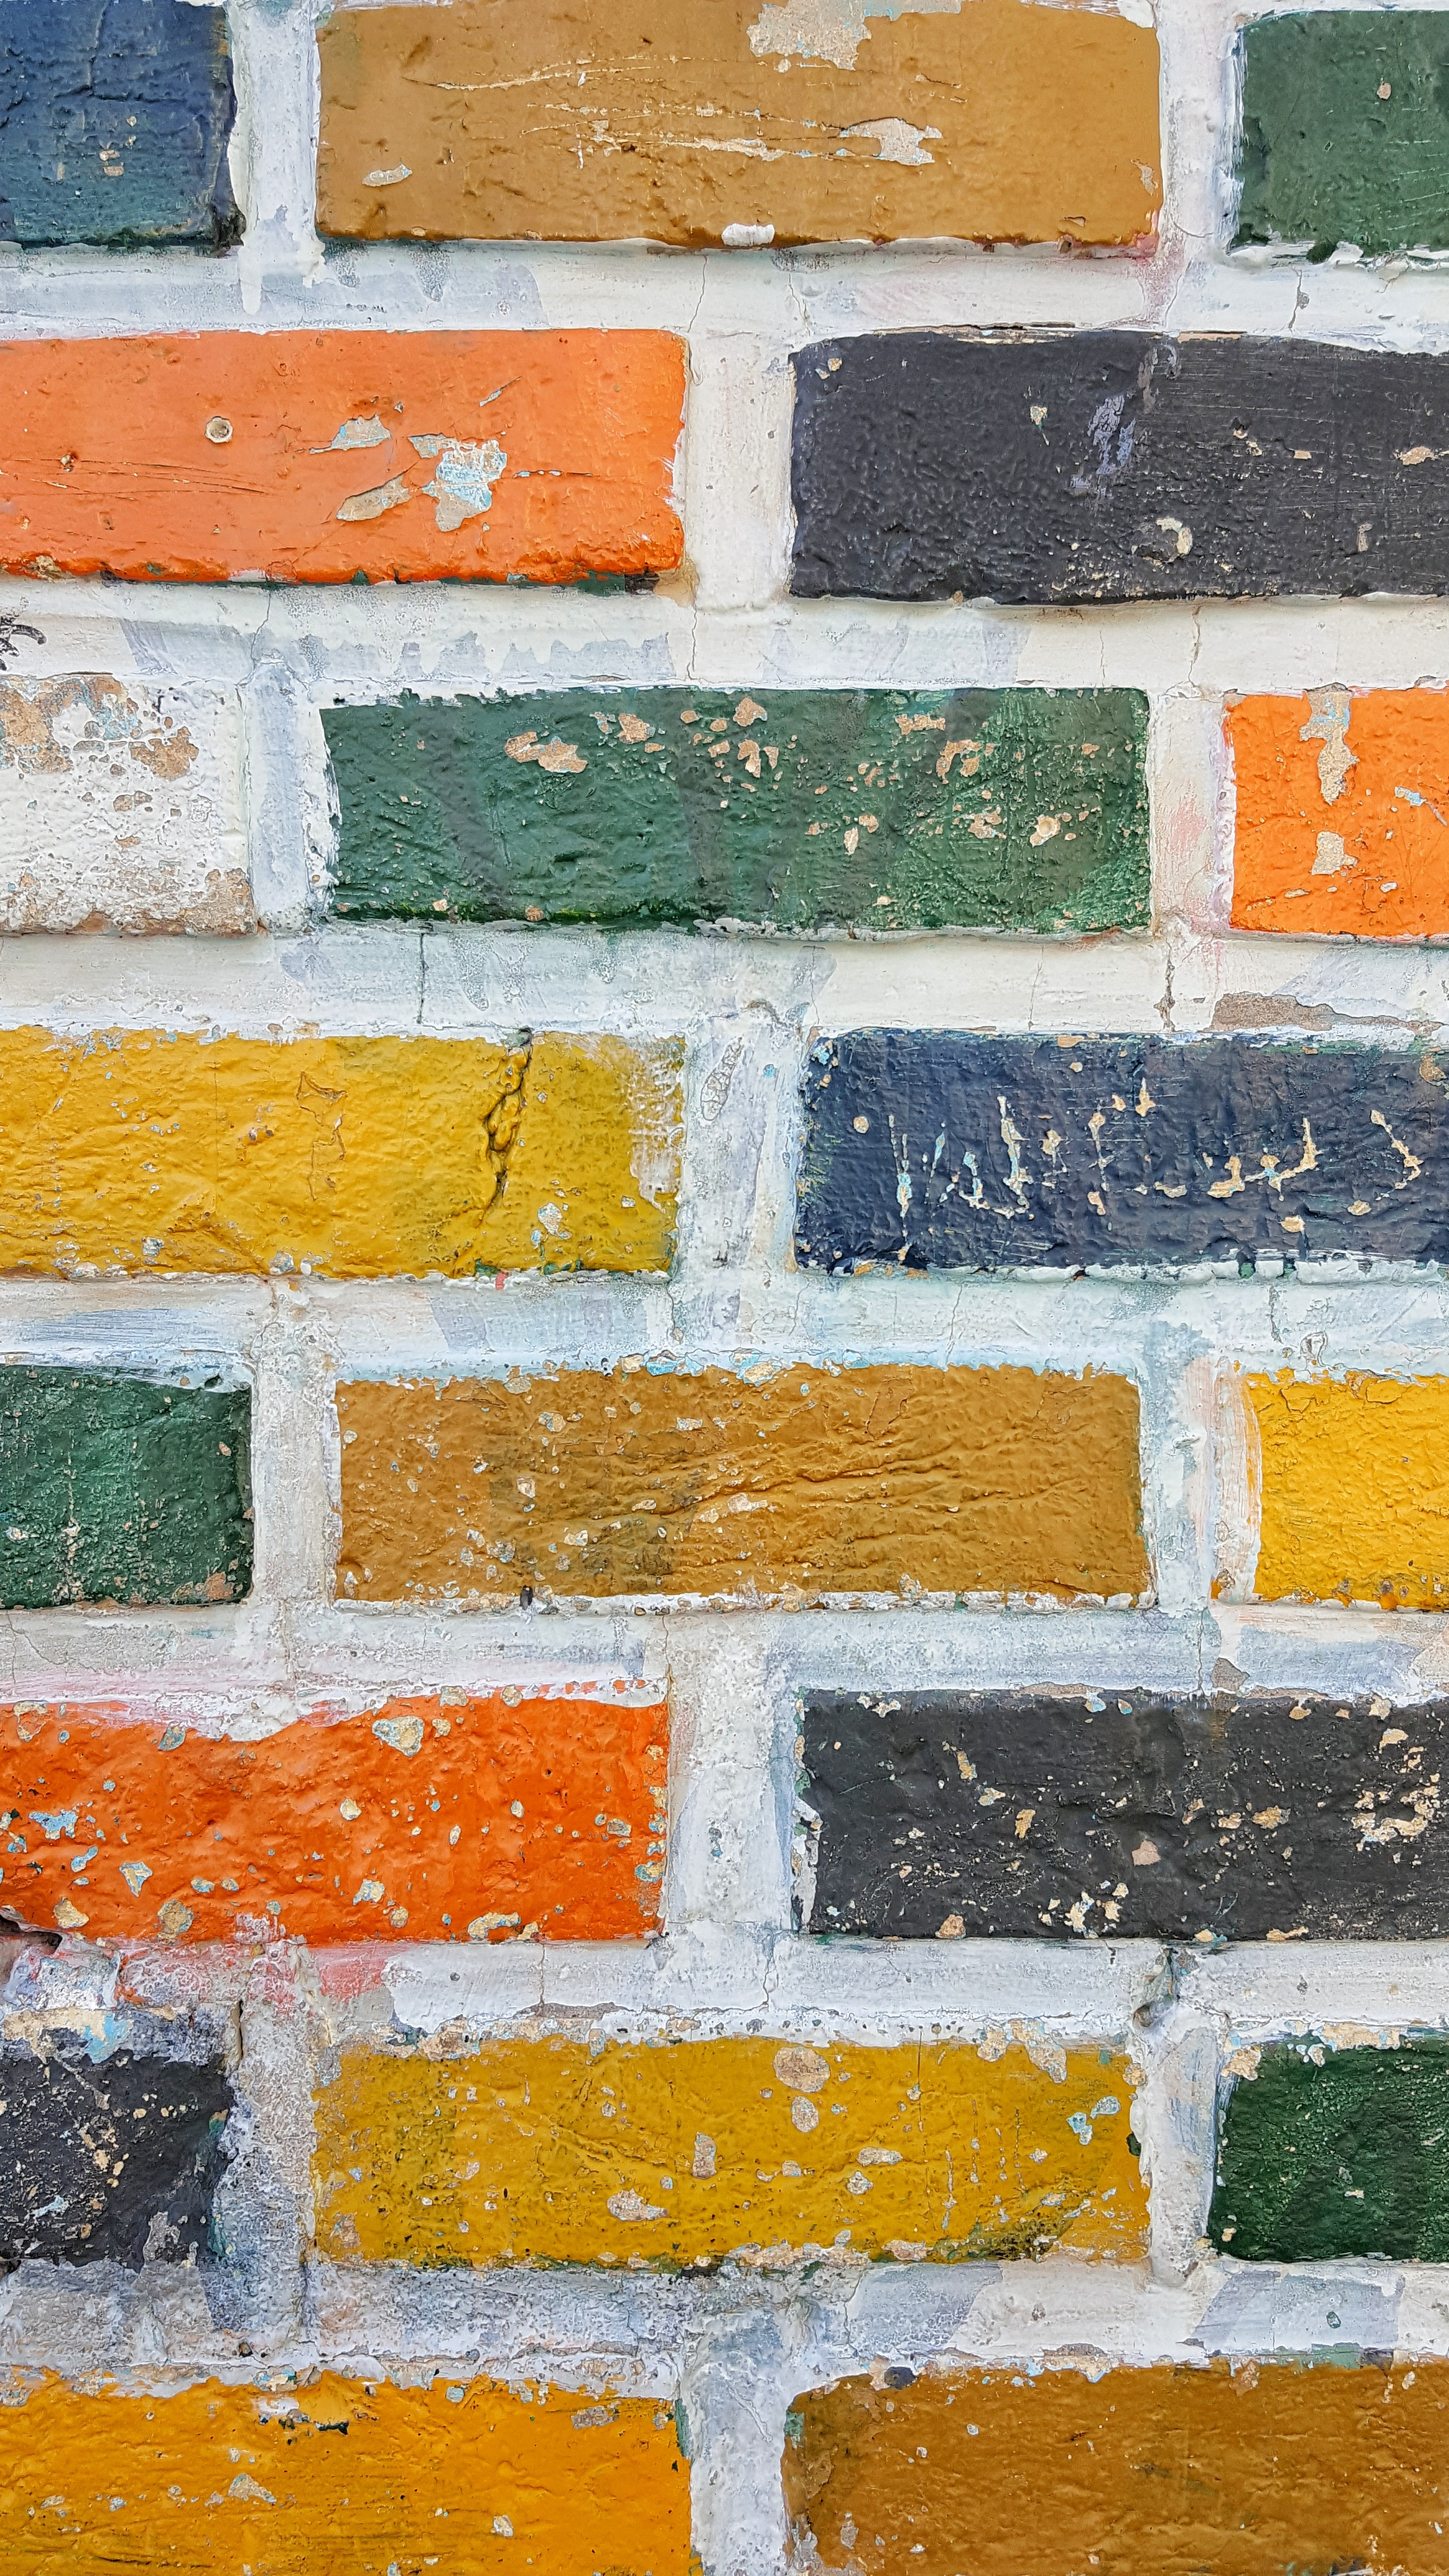 131080 download wallpaper Textures, Texture, Wall, Brick, Multicolored, Motley, Surface screensavers and pictures for free